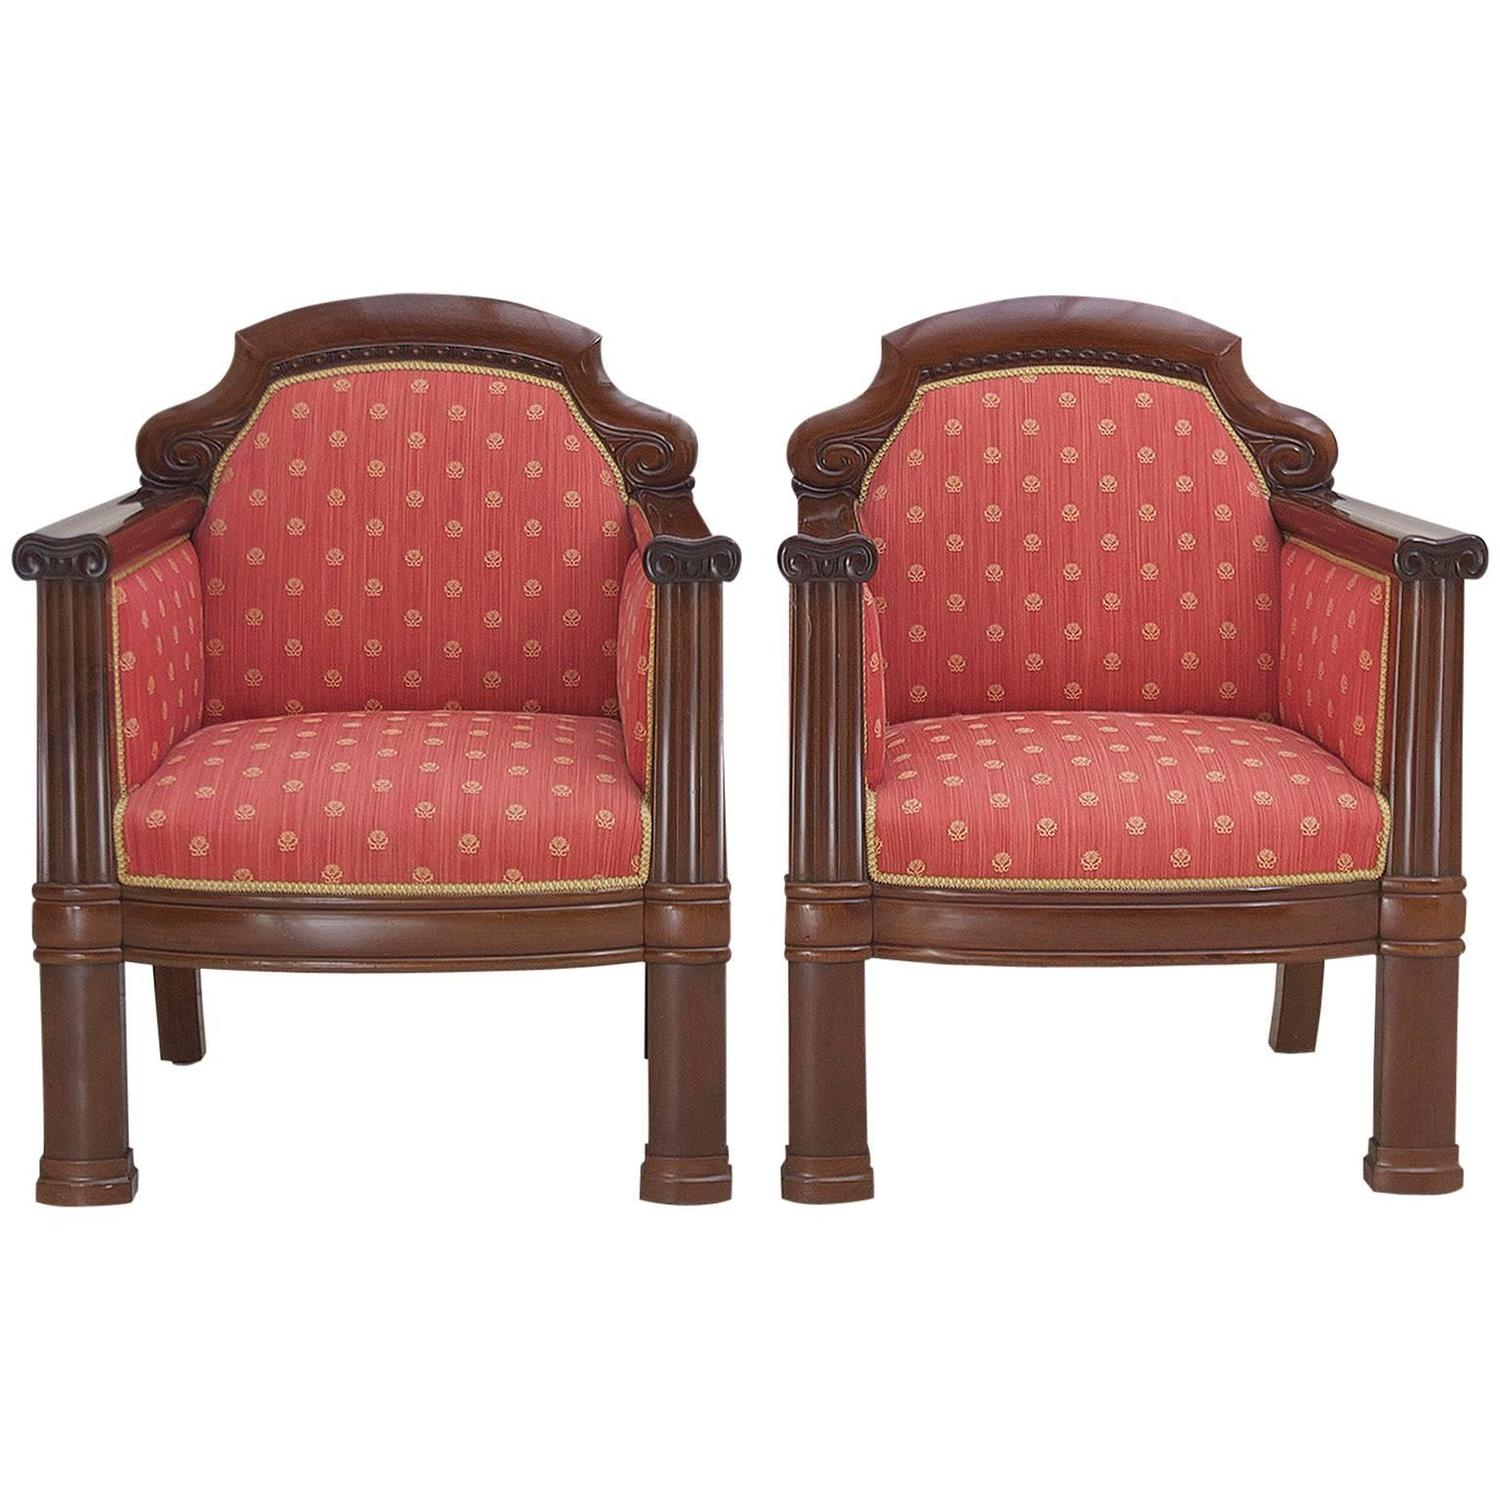 Genial Pair Of Danish Art Deco Club Chairs In Mahogany With Upholstery, Circa 1920s